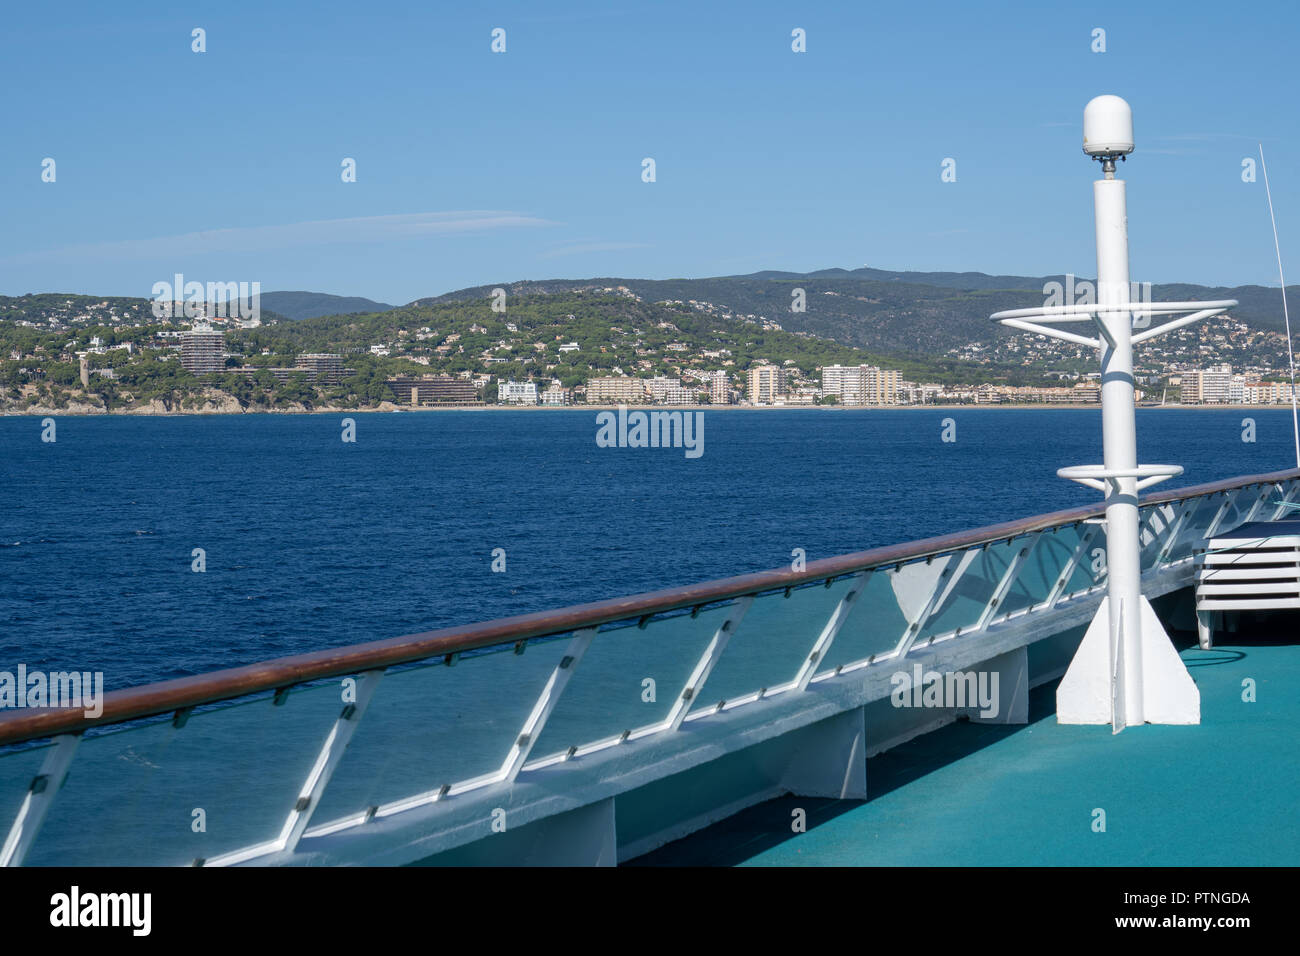 Oceanview from a Cruise Ship to the Ocean. The Island is in the background and the rail in the foreground - Stock Image